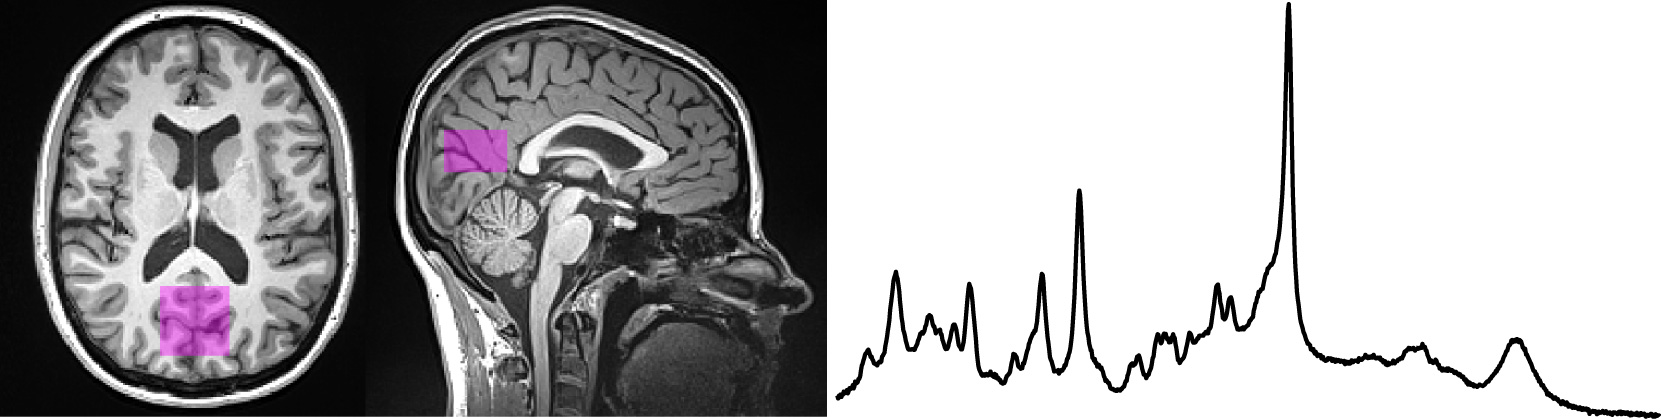 Localized proton magnetic resonance spectroscopy for measurements of neurochemical concentrations in the human brain.